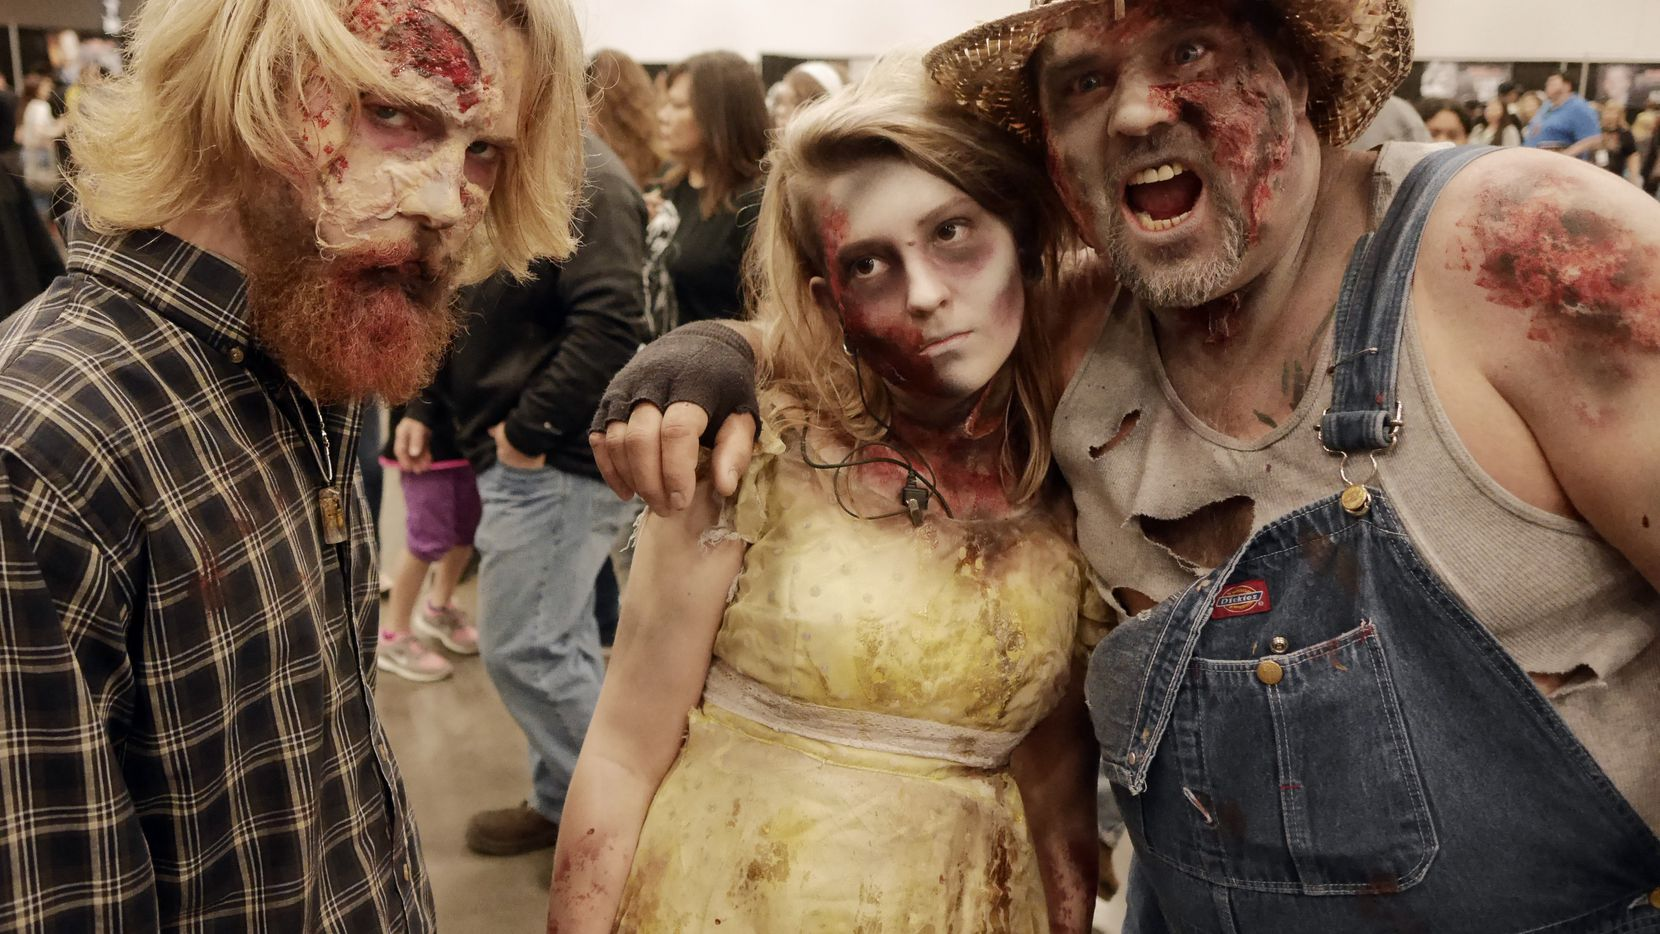 Cutting Edge Haunted House zombies Brenden Allen, Jessica Love and Lee Schulz  at the Walker Stalker Con 2015.